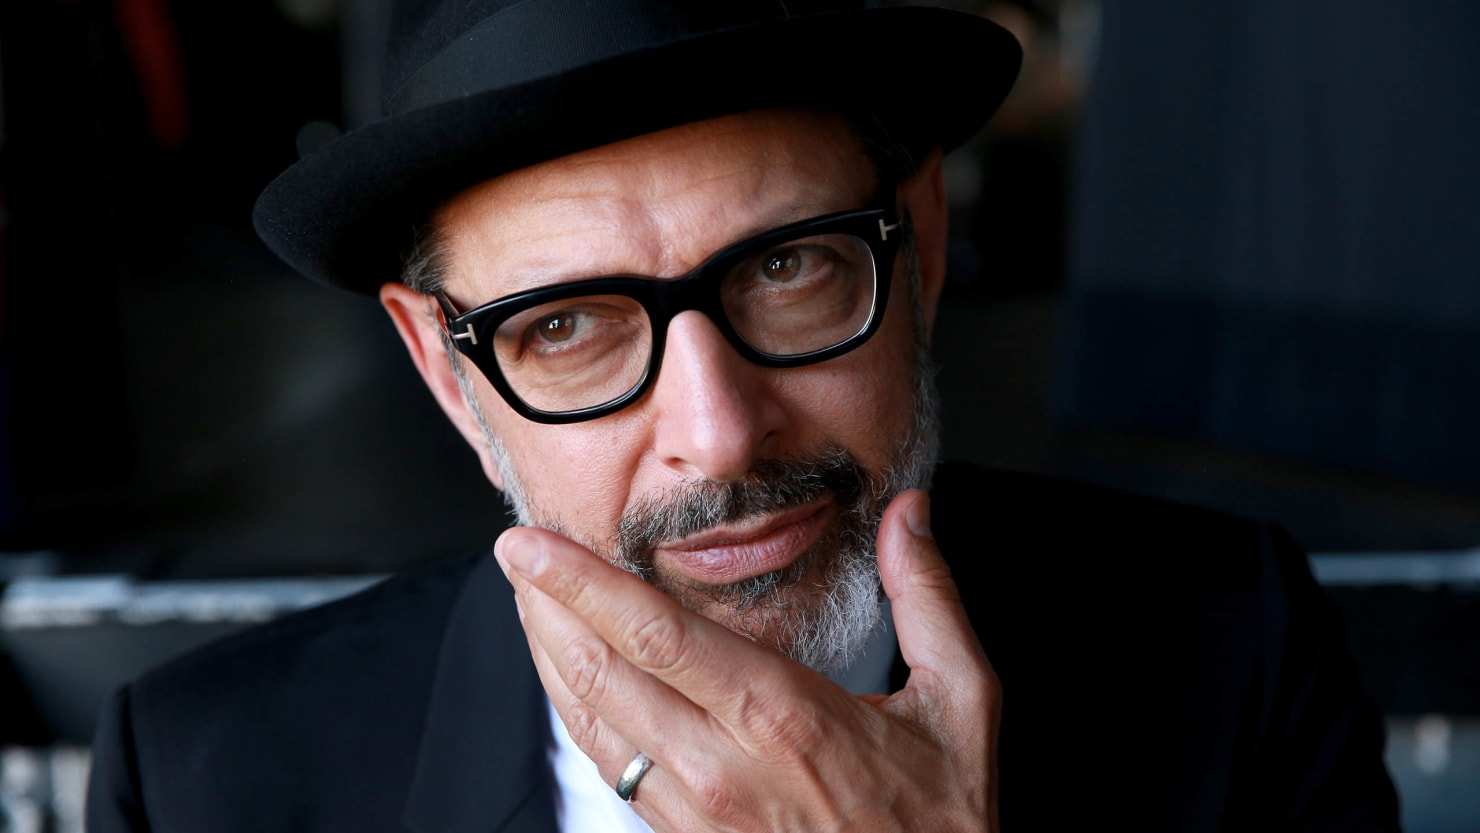 Jeff Goldblum Is Living His Best Life When You Look Like This Gotta Flaunt It